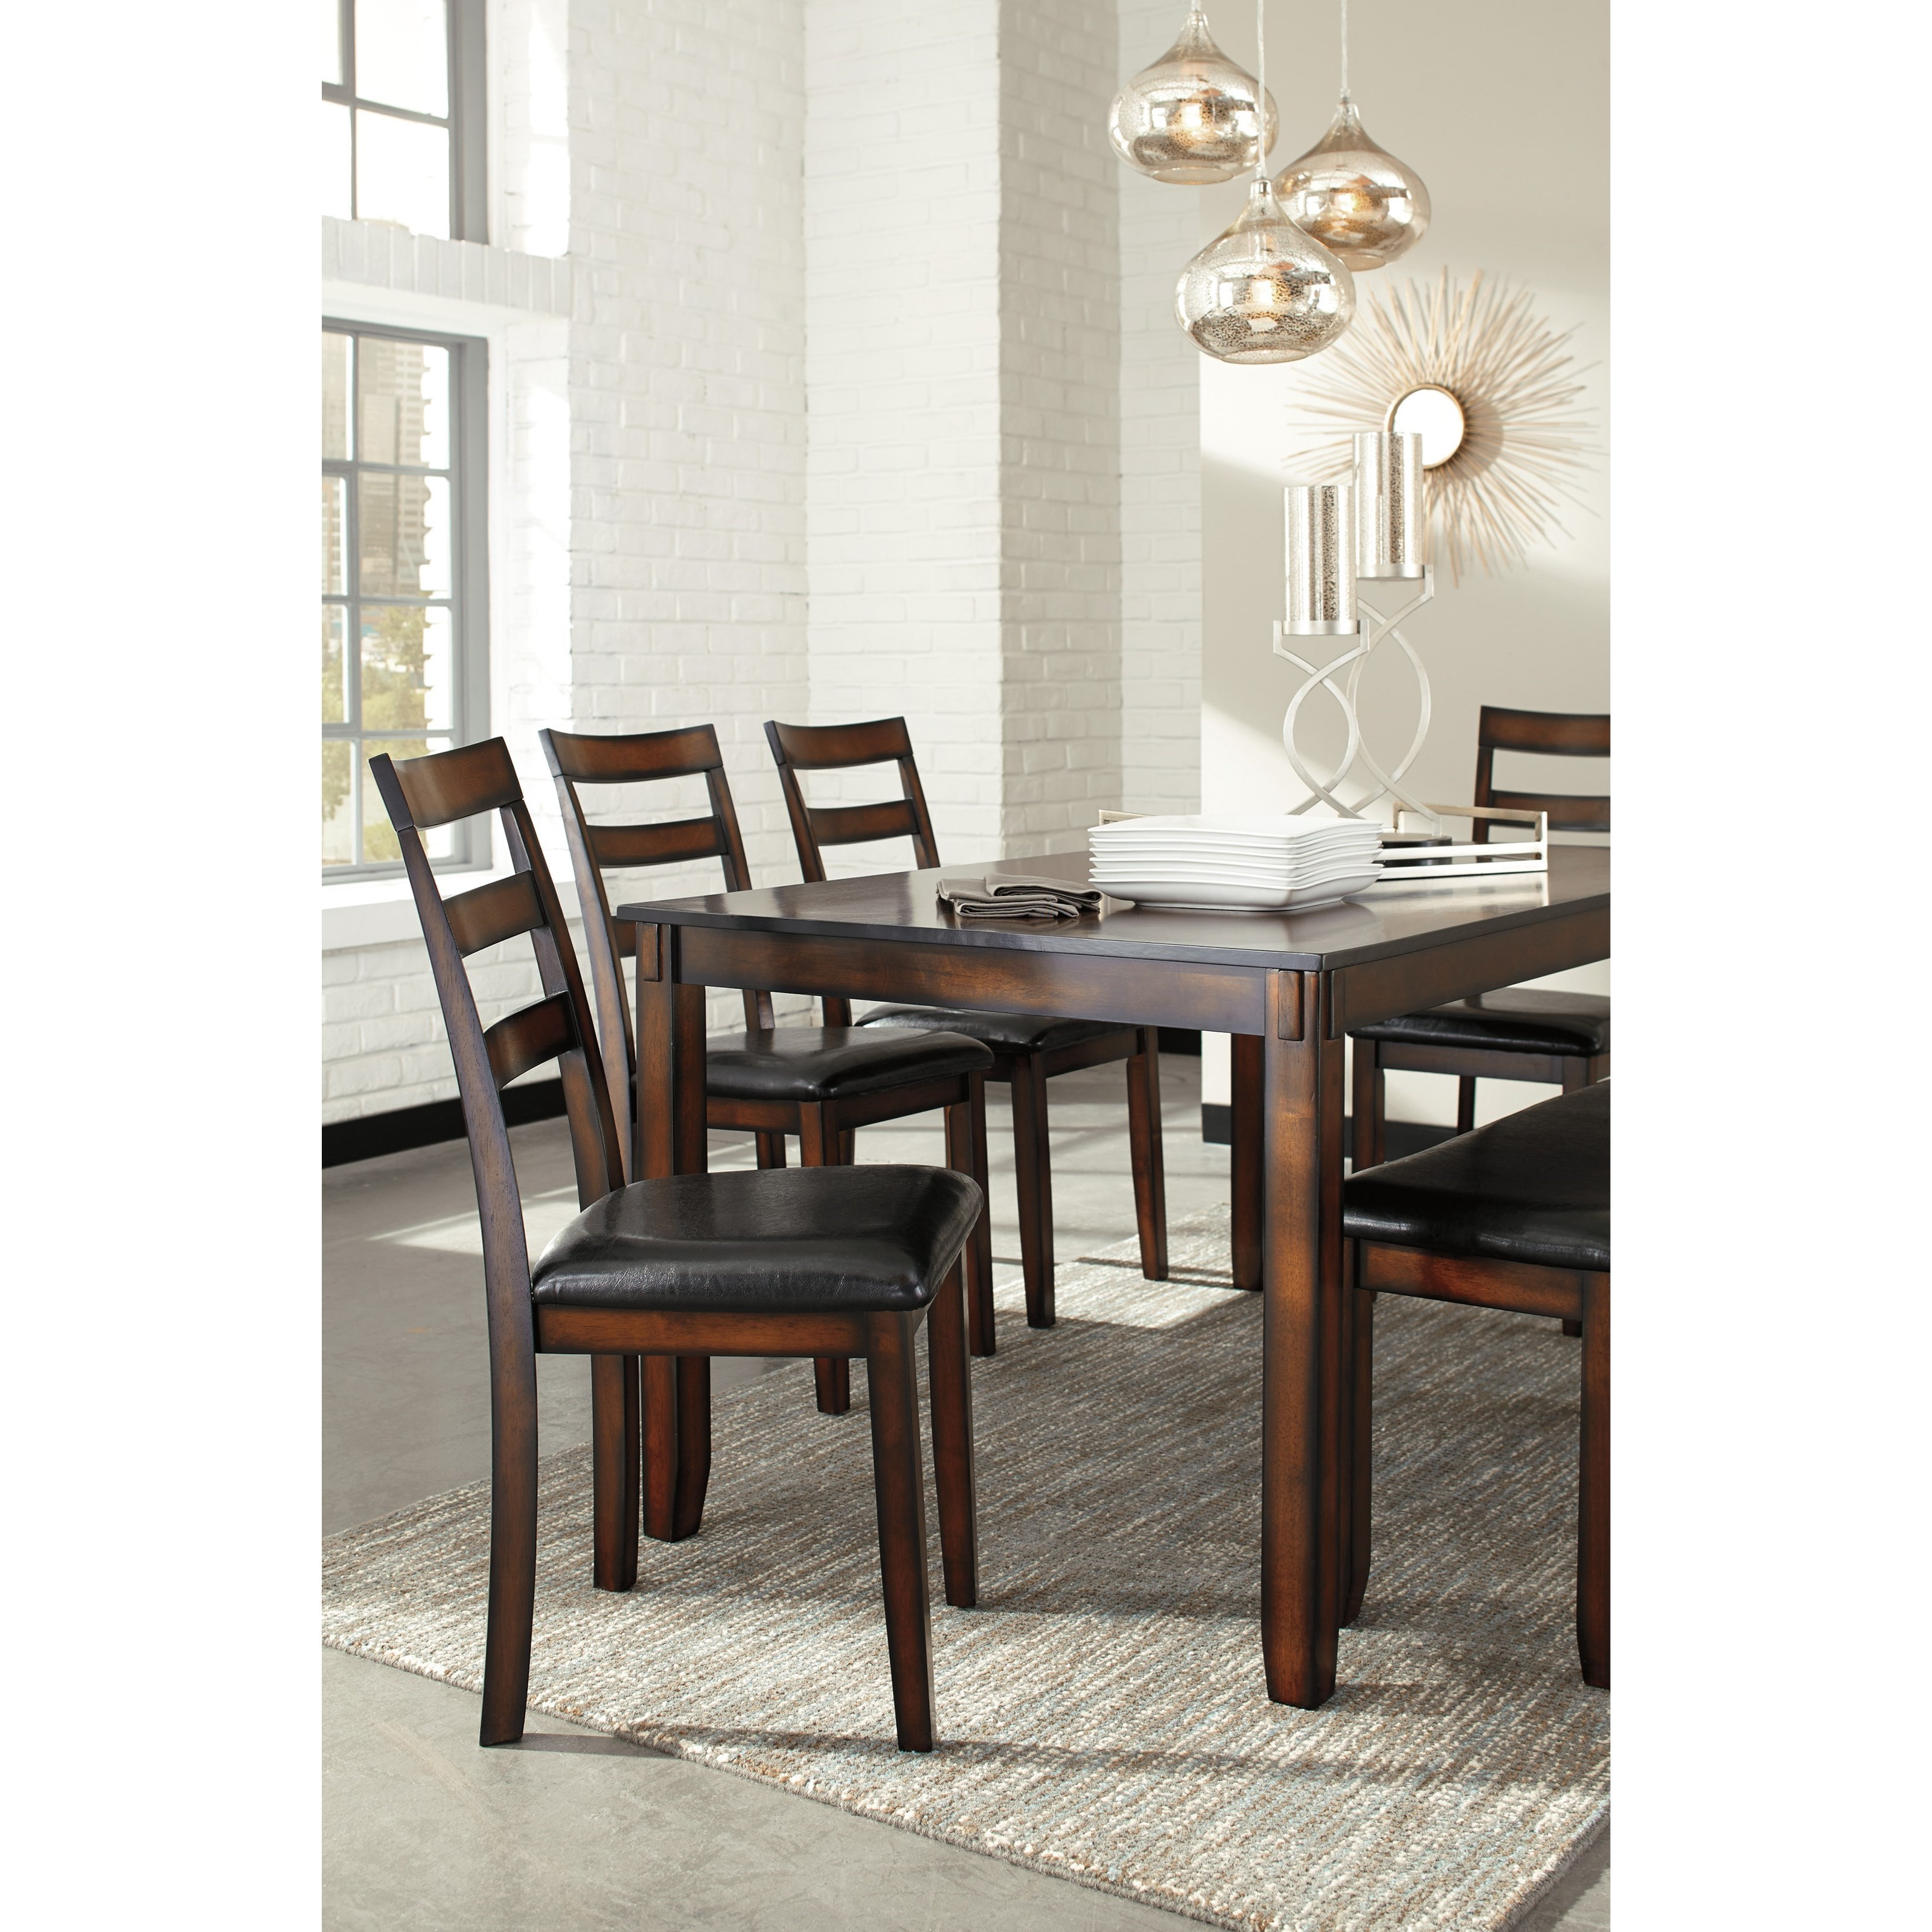 Signature Design By Ashley Besteneer Formal Dining Room: Ashley Signature Design Coviar D385-325 Burnished Brown 6